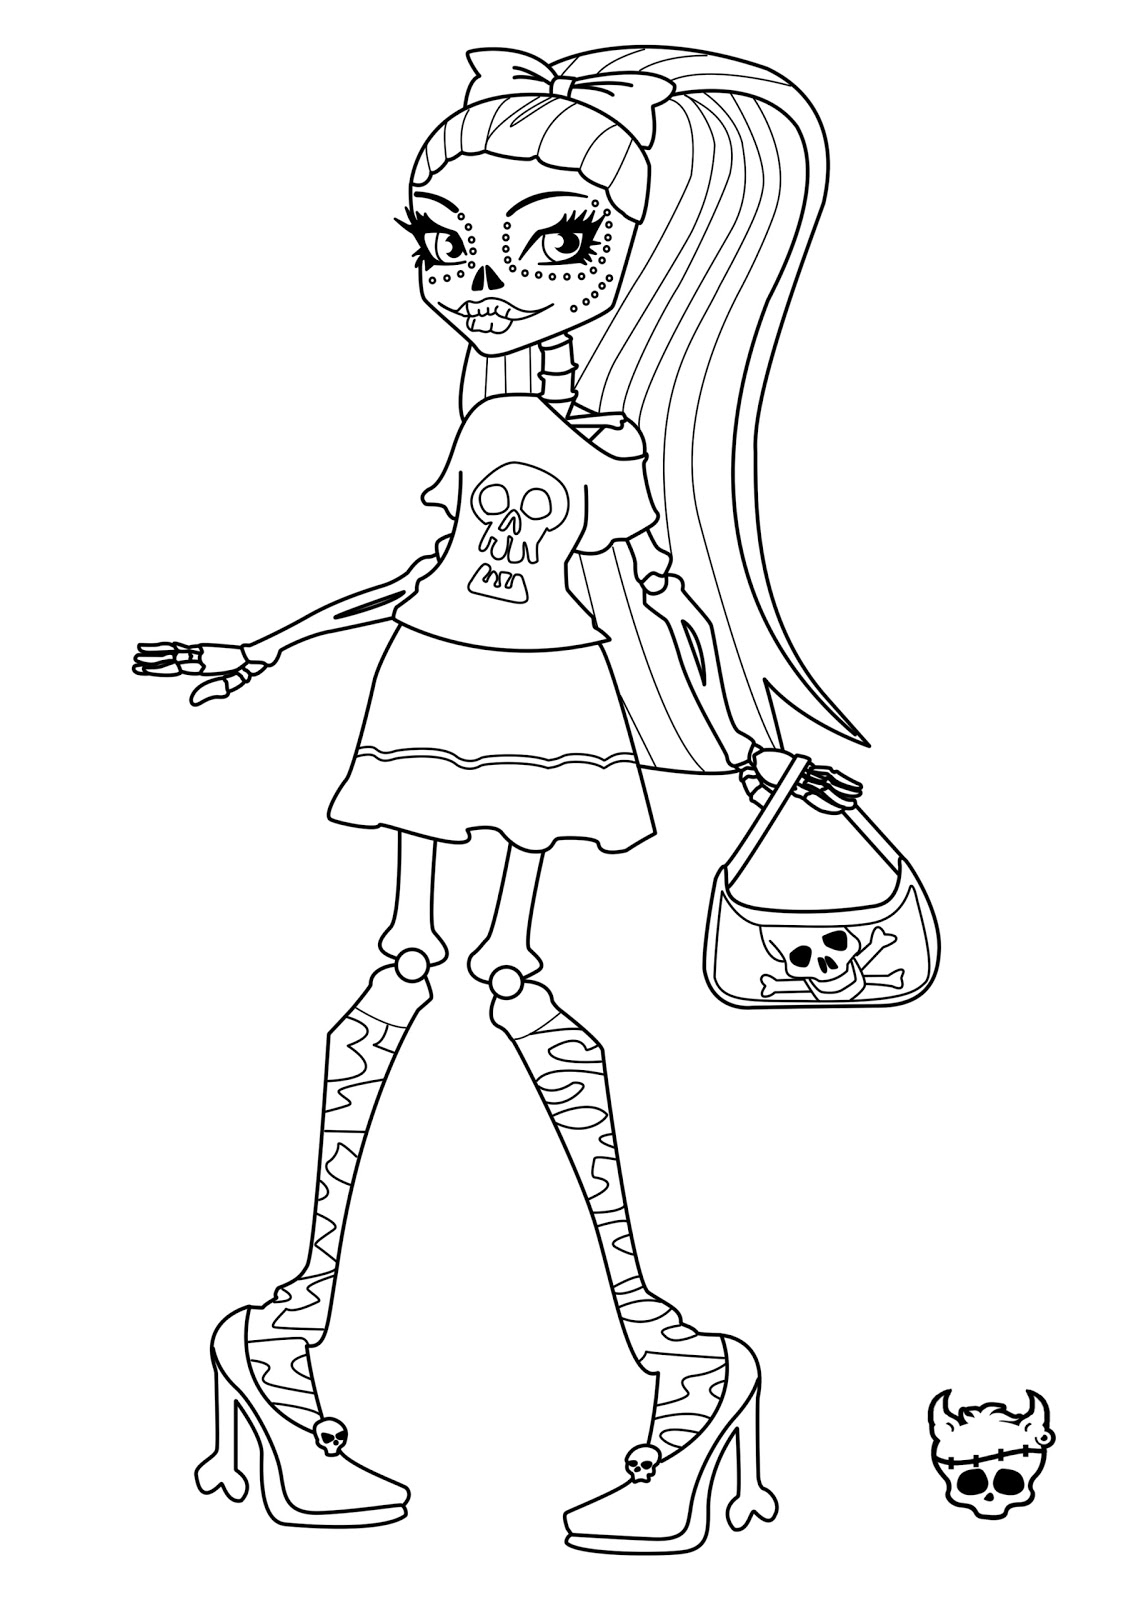 monster high coloring picture 30 monster high coloring pages in 2020 unicorn coloring monster high picture coloring